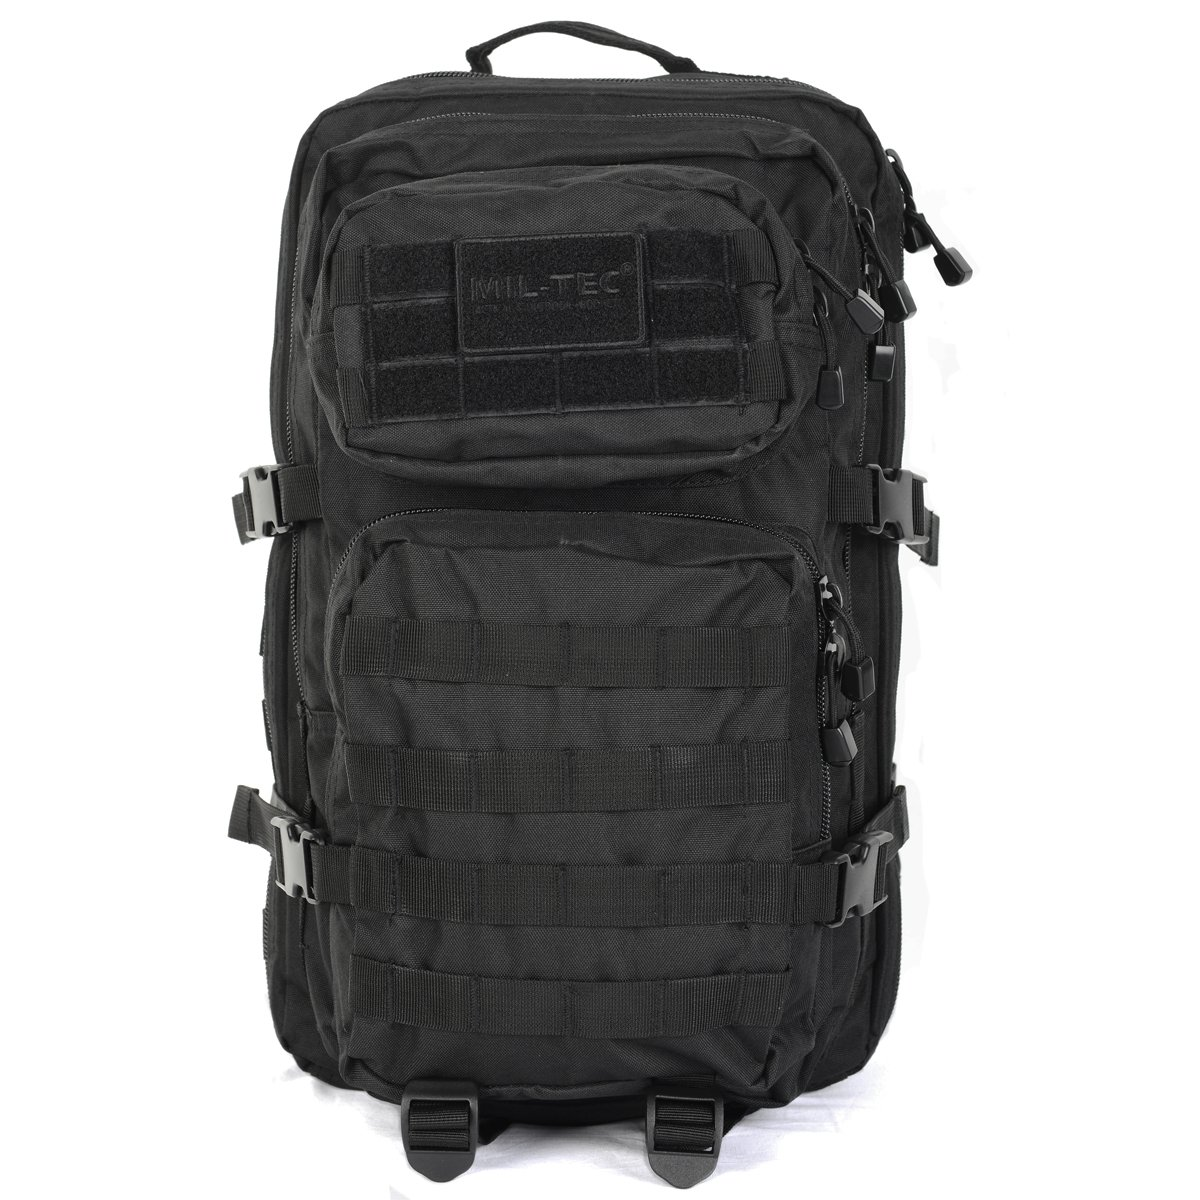 Mil-Tec MOLLE Tactical Assault Backpack - Large 36 Litre (Black)   Amazon.co.uk  Sports   Outdoors 778402c11aa86